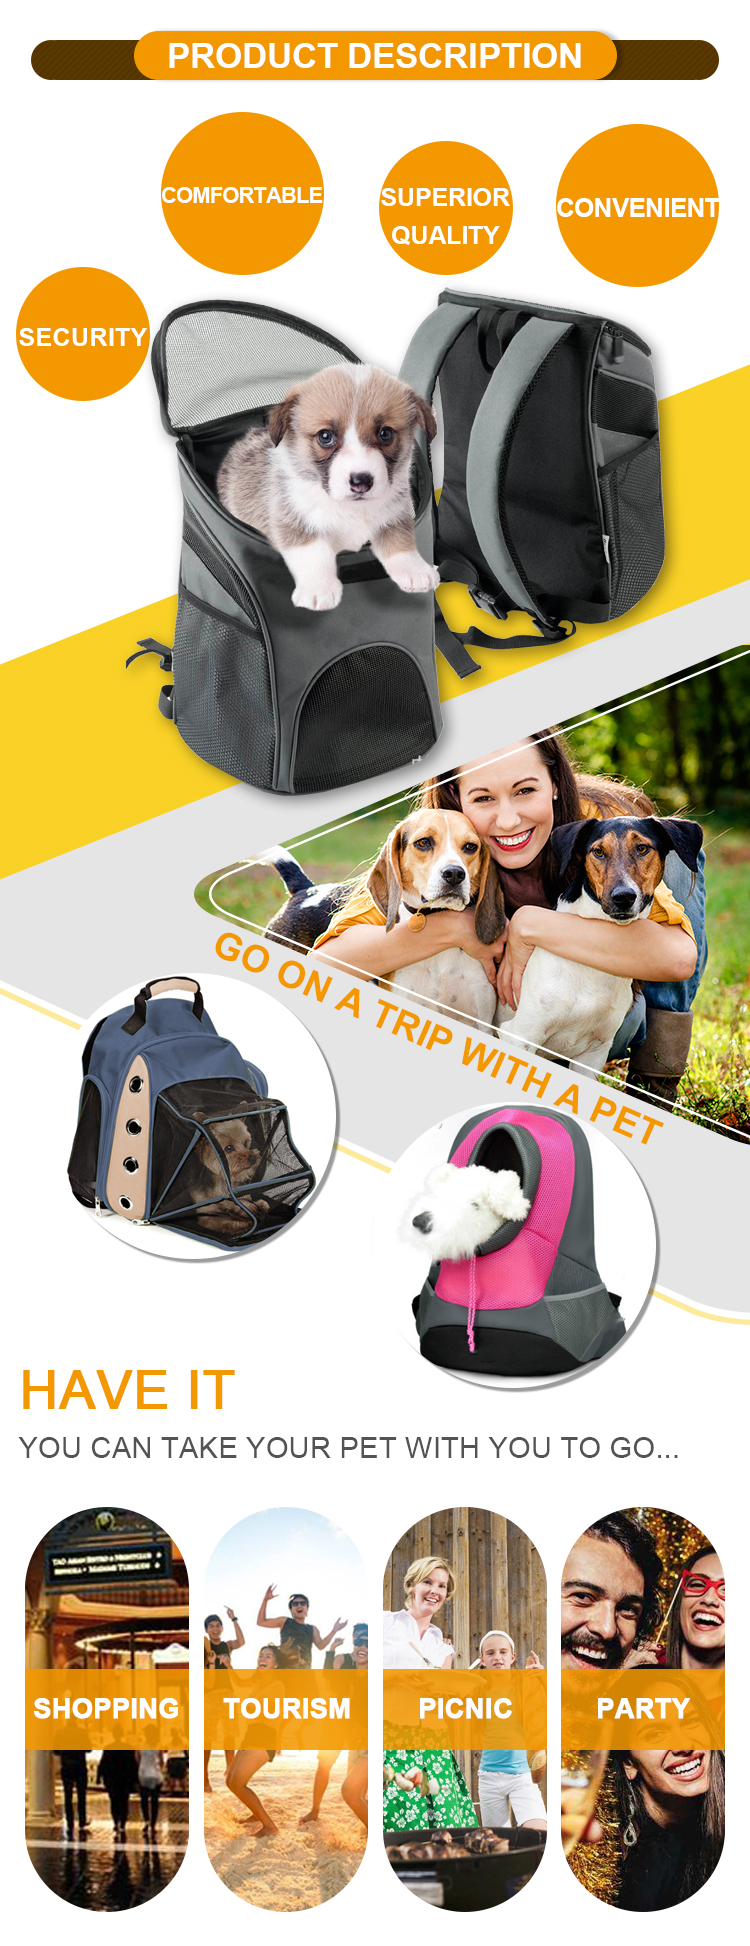 Backpack for carrying dogs backpack carrier airline approved